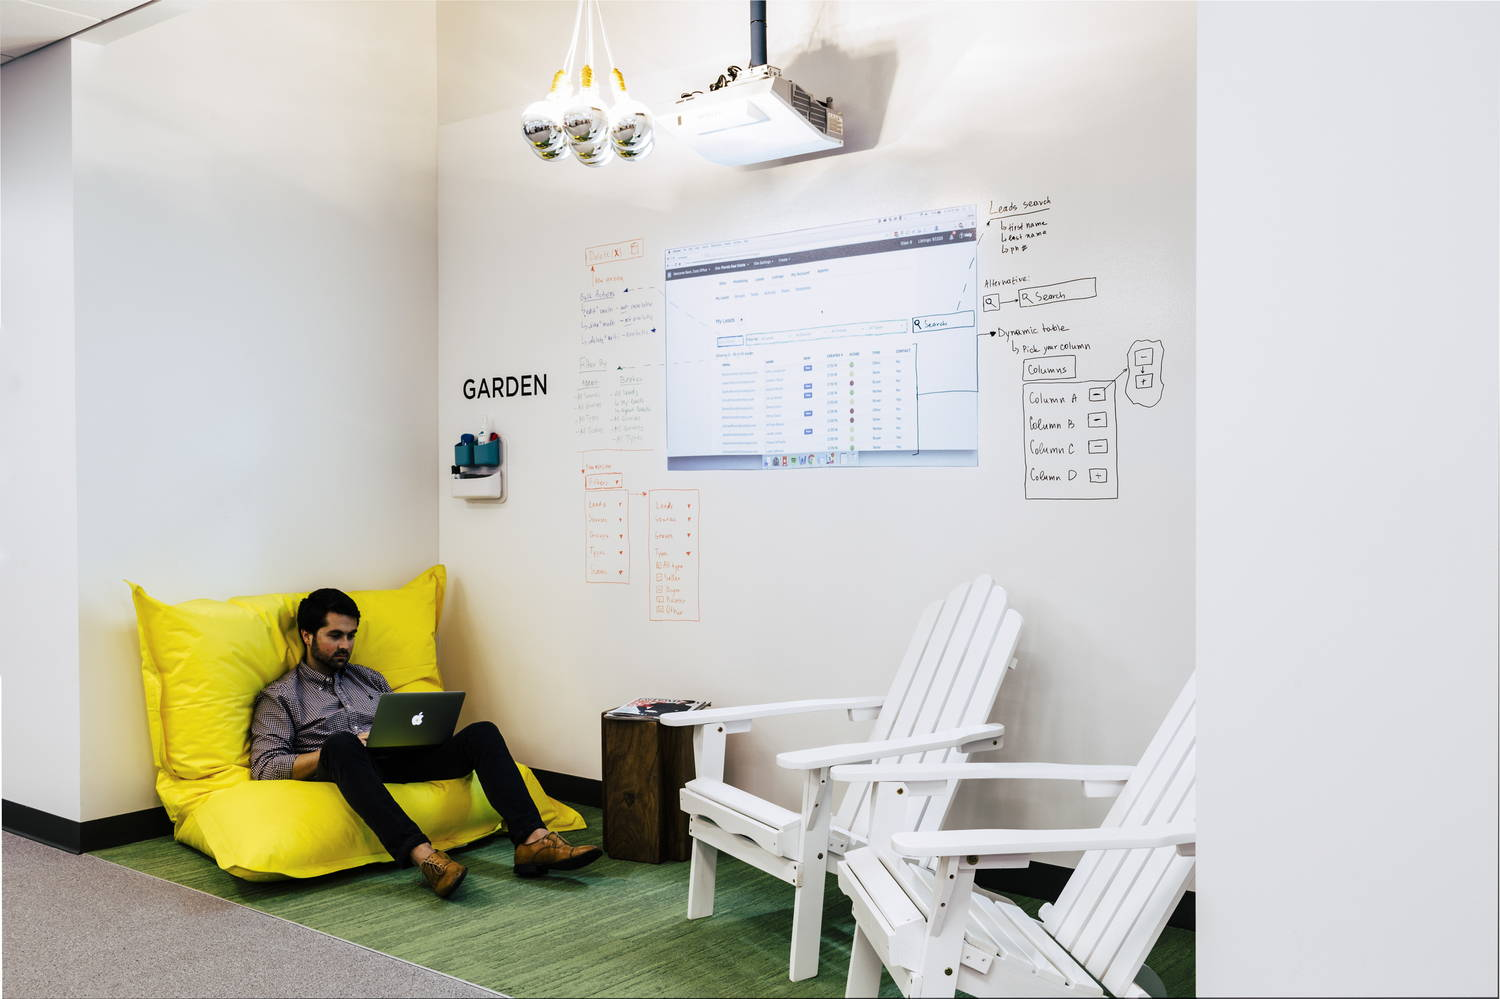 IdeaPaint Dry Erase paint for workplaces. IdeaPaint's solutions help companies create workspaces that foster collaboration, promote creativity, and increase engagement so that your company can increase productivity and bring great ideas to life.